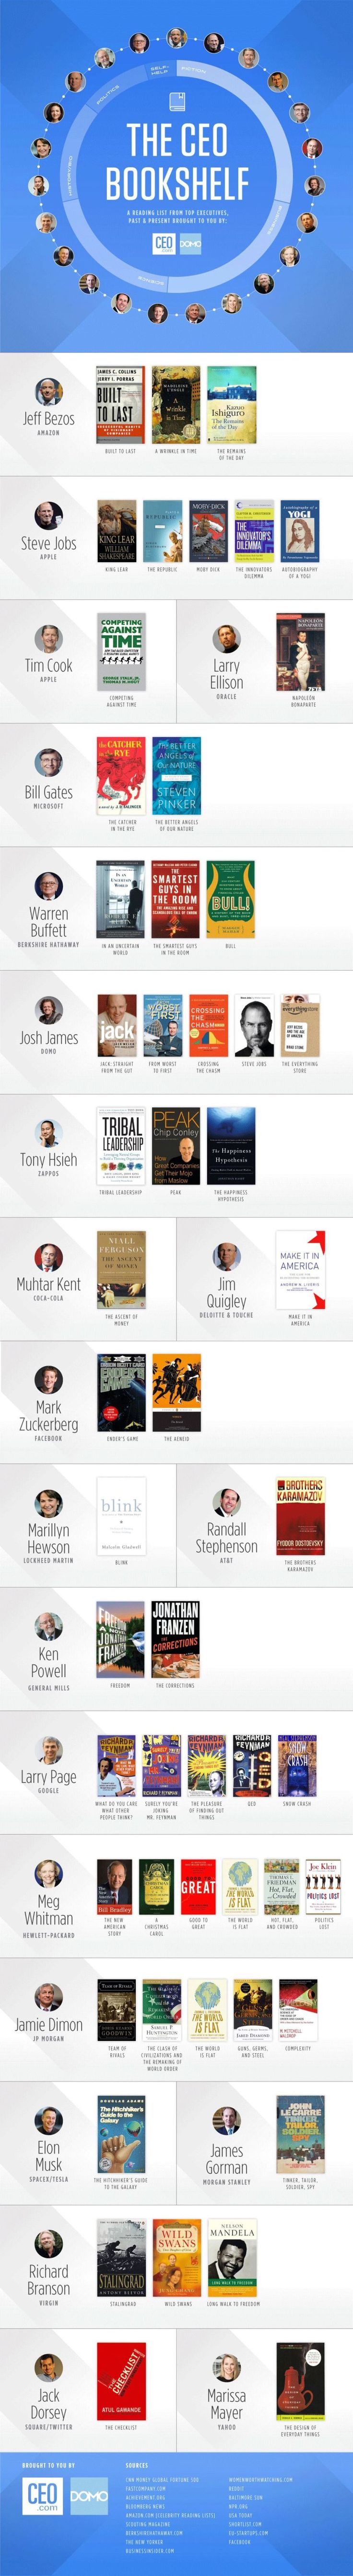 Favorite #books of most influential business people - #infographic